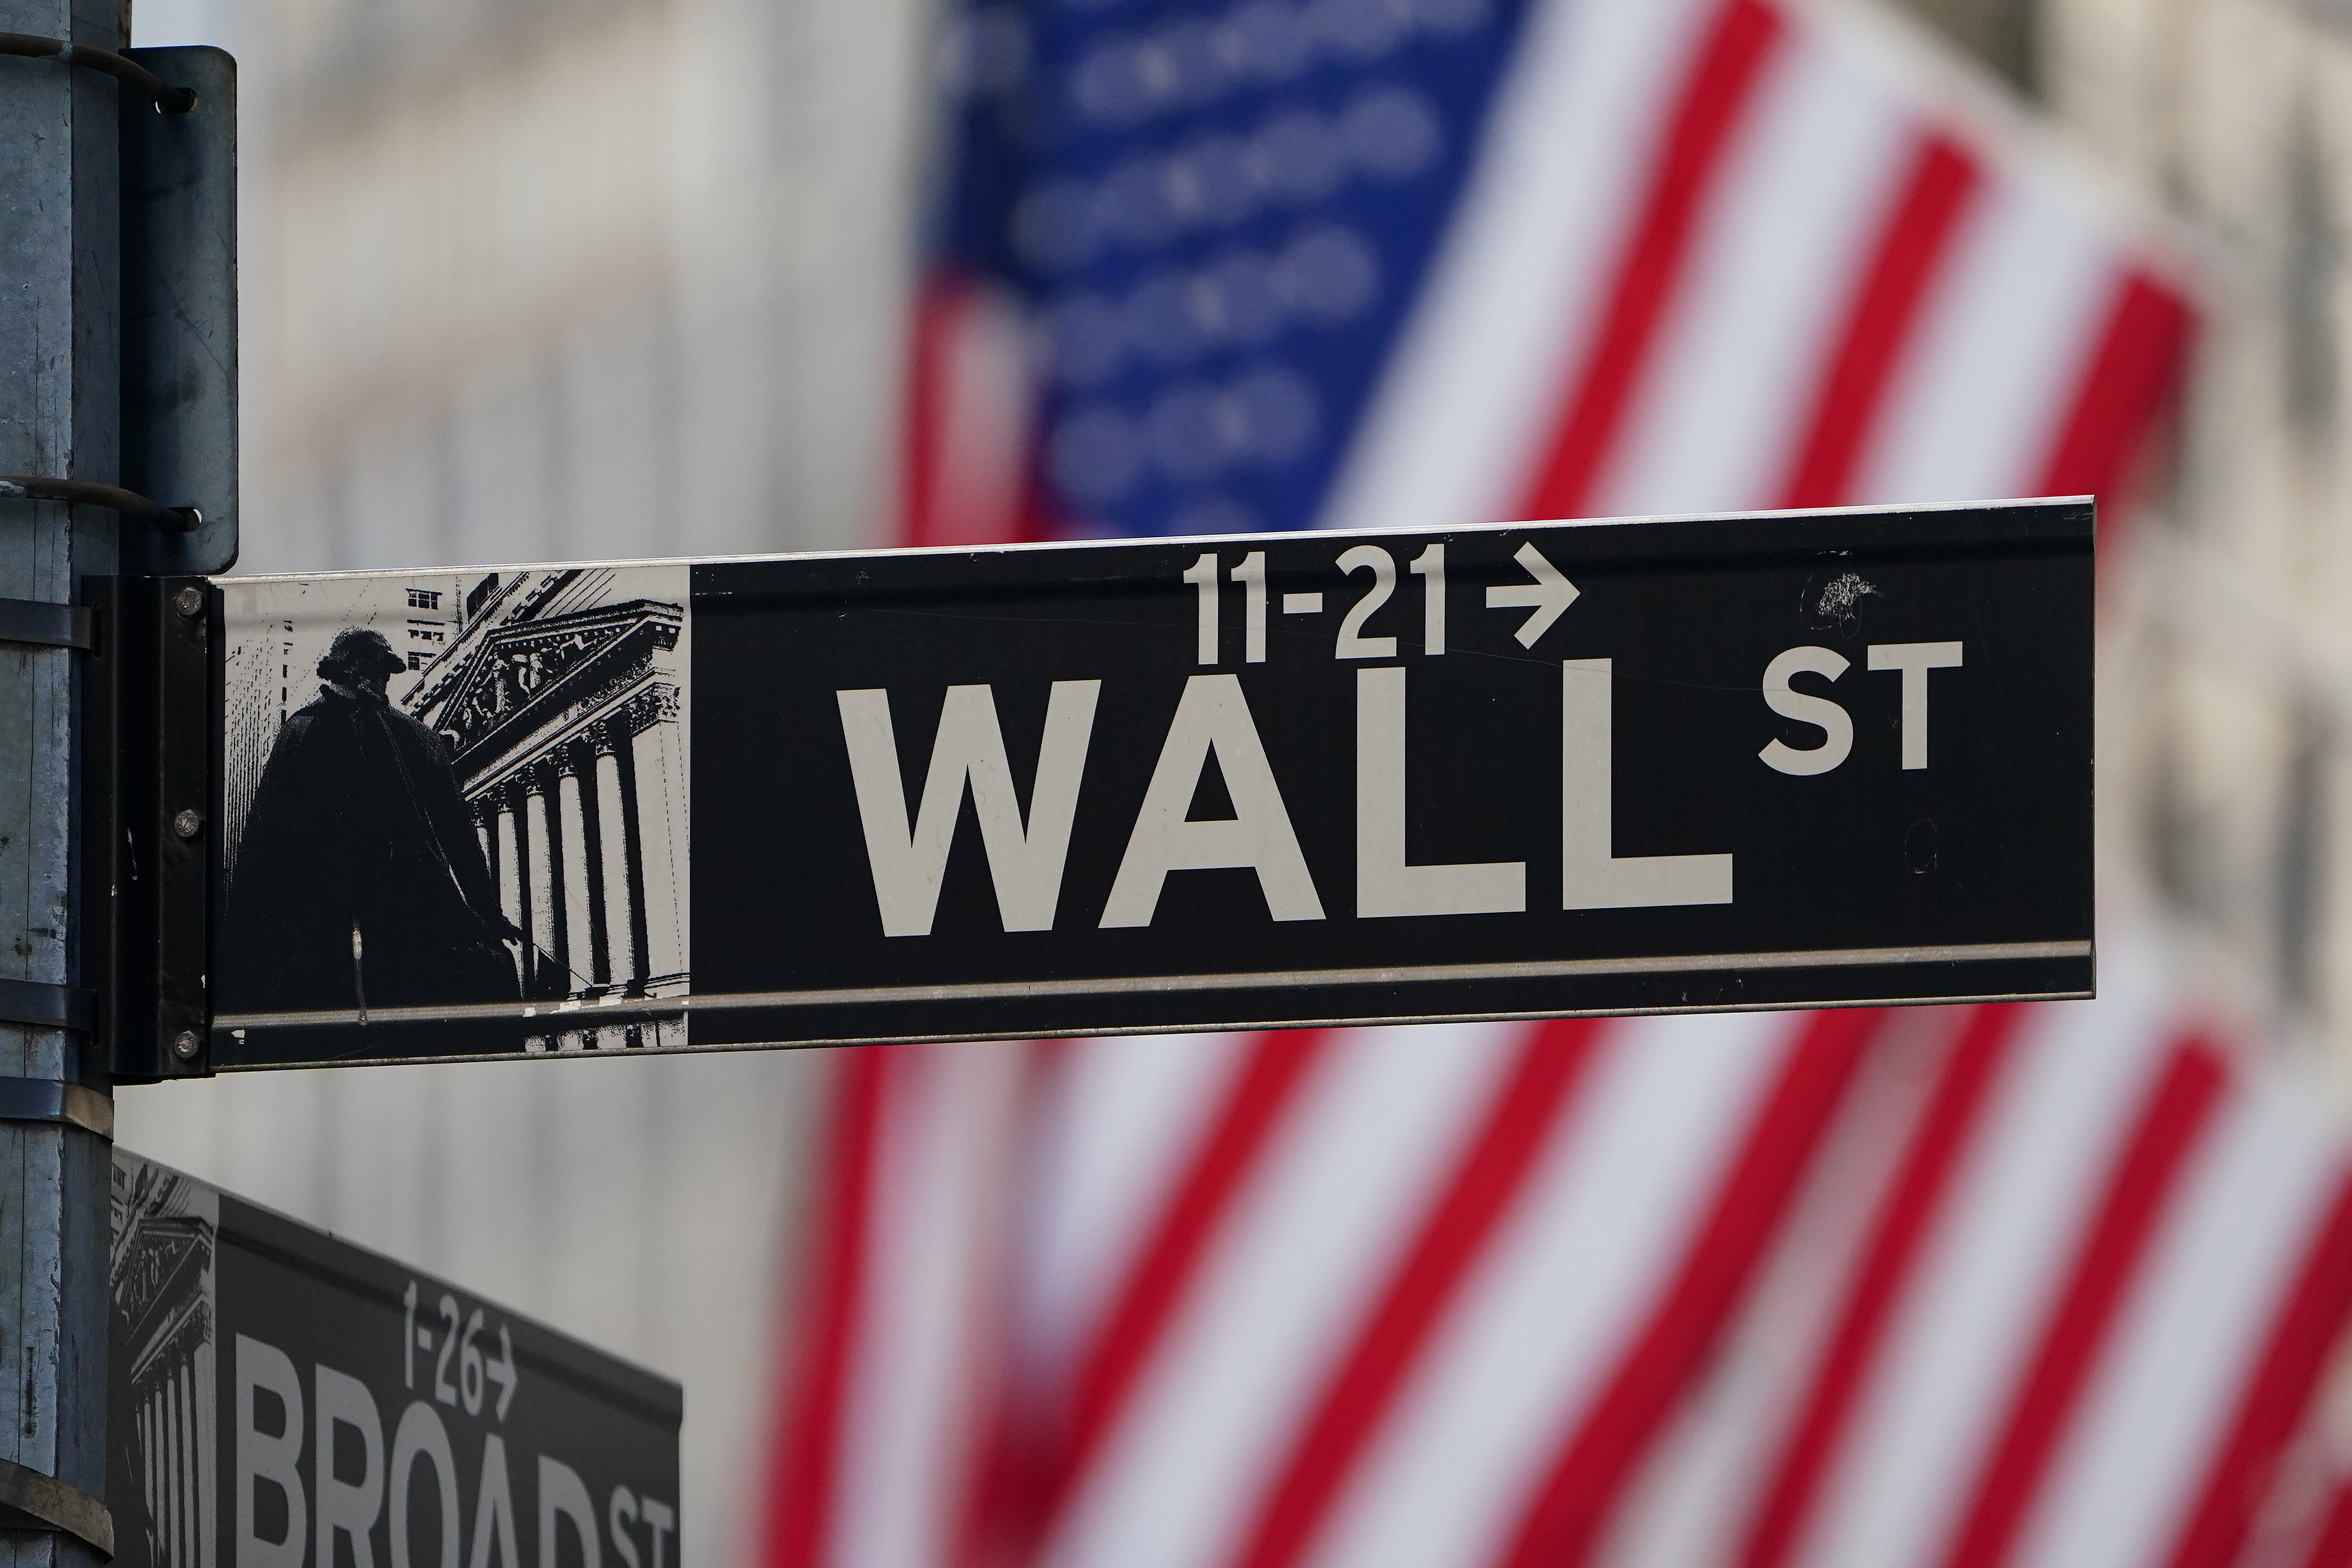 The Wall Street sign is pictured at the New York Stock exchange (NYSE) in the Manhattan borough of New York City, New York, U.S., March 9, 2020. REUTERS/Carlo Allegri - RC2KGF9KRPHZ